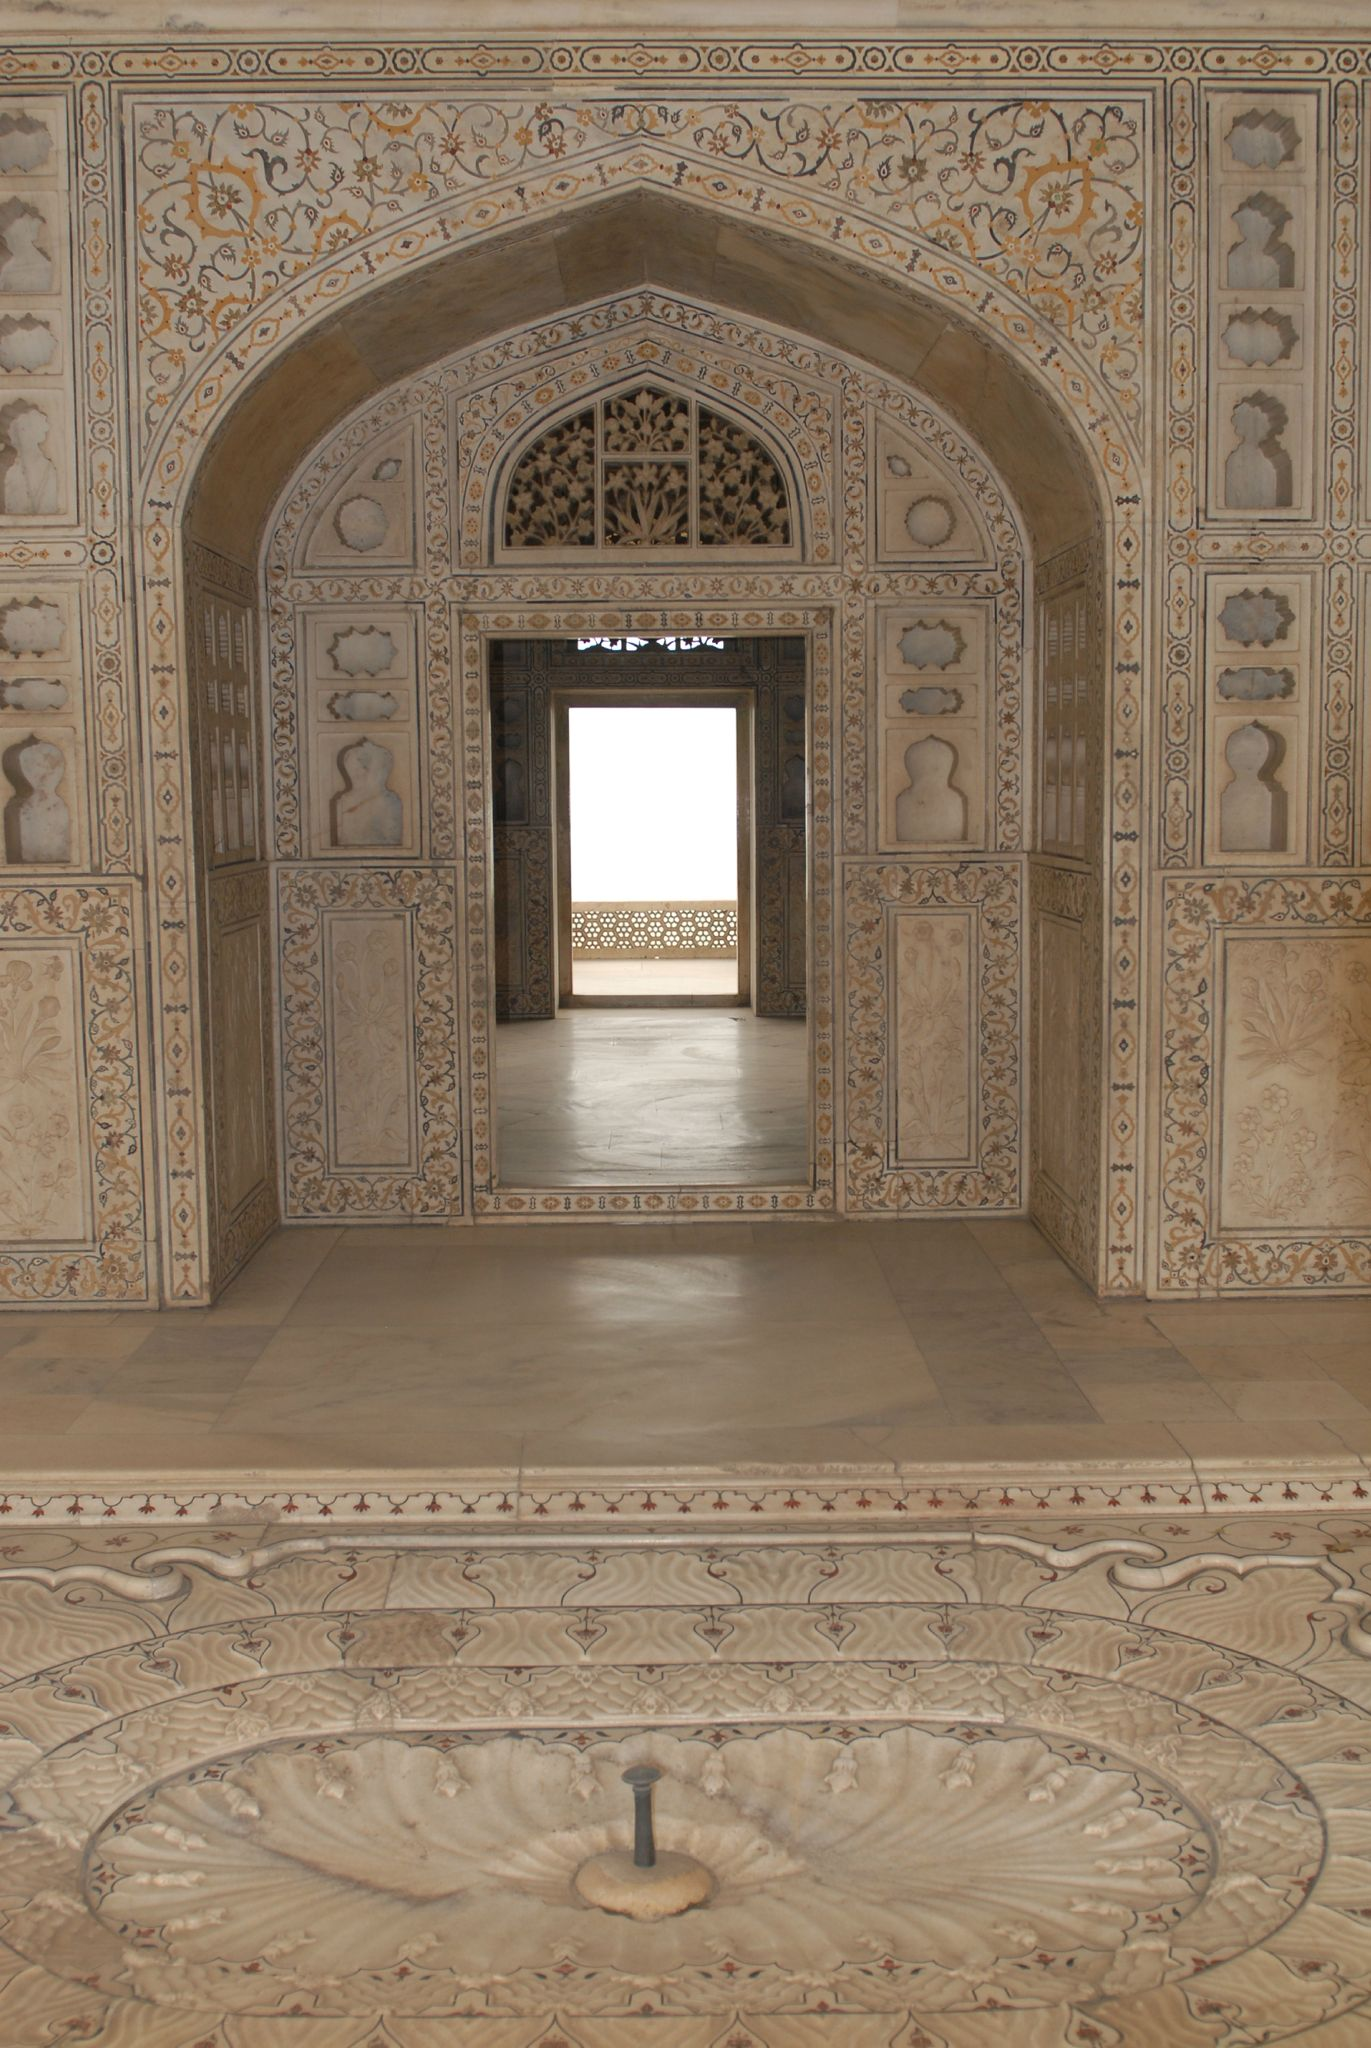 le fort rouge, Agra